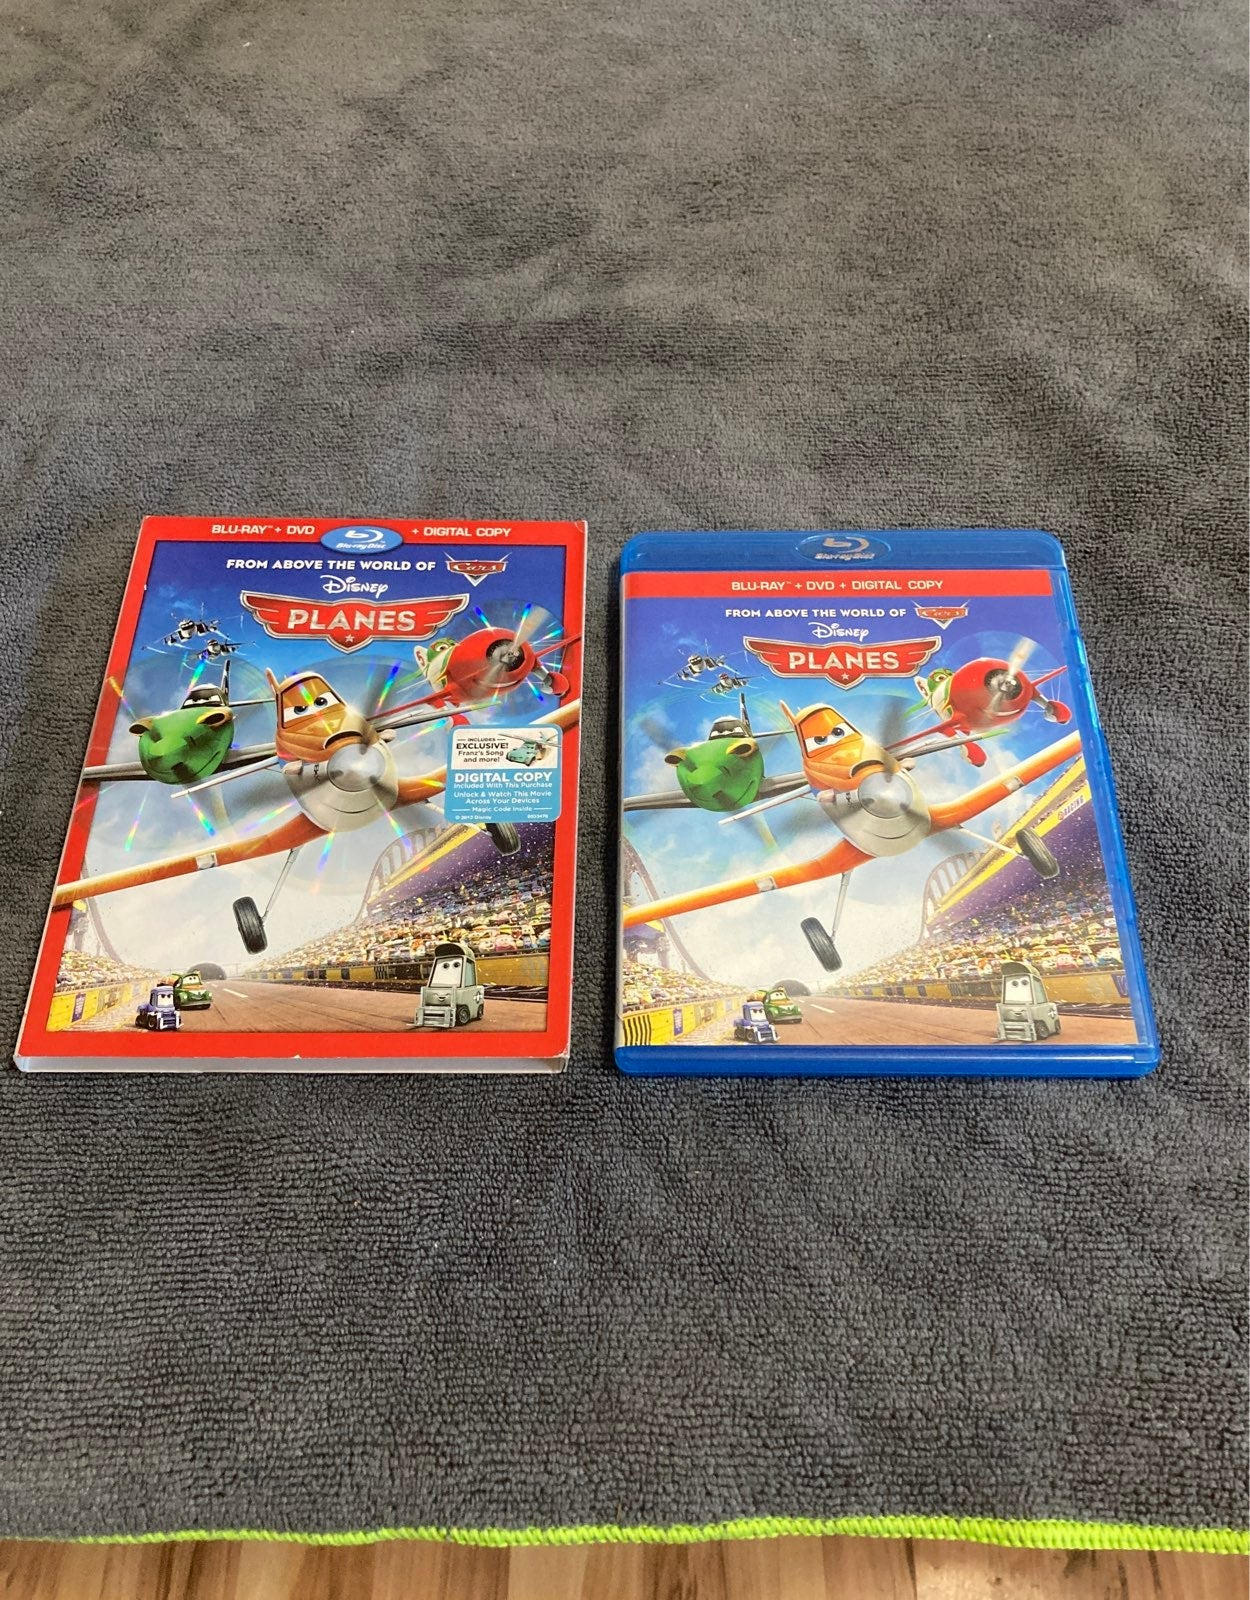 Planes ~Blu-ray and DVD~